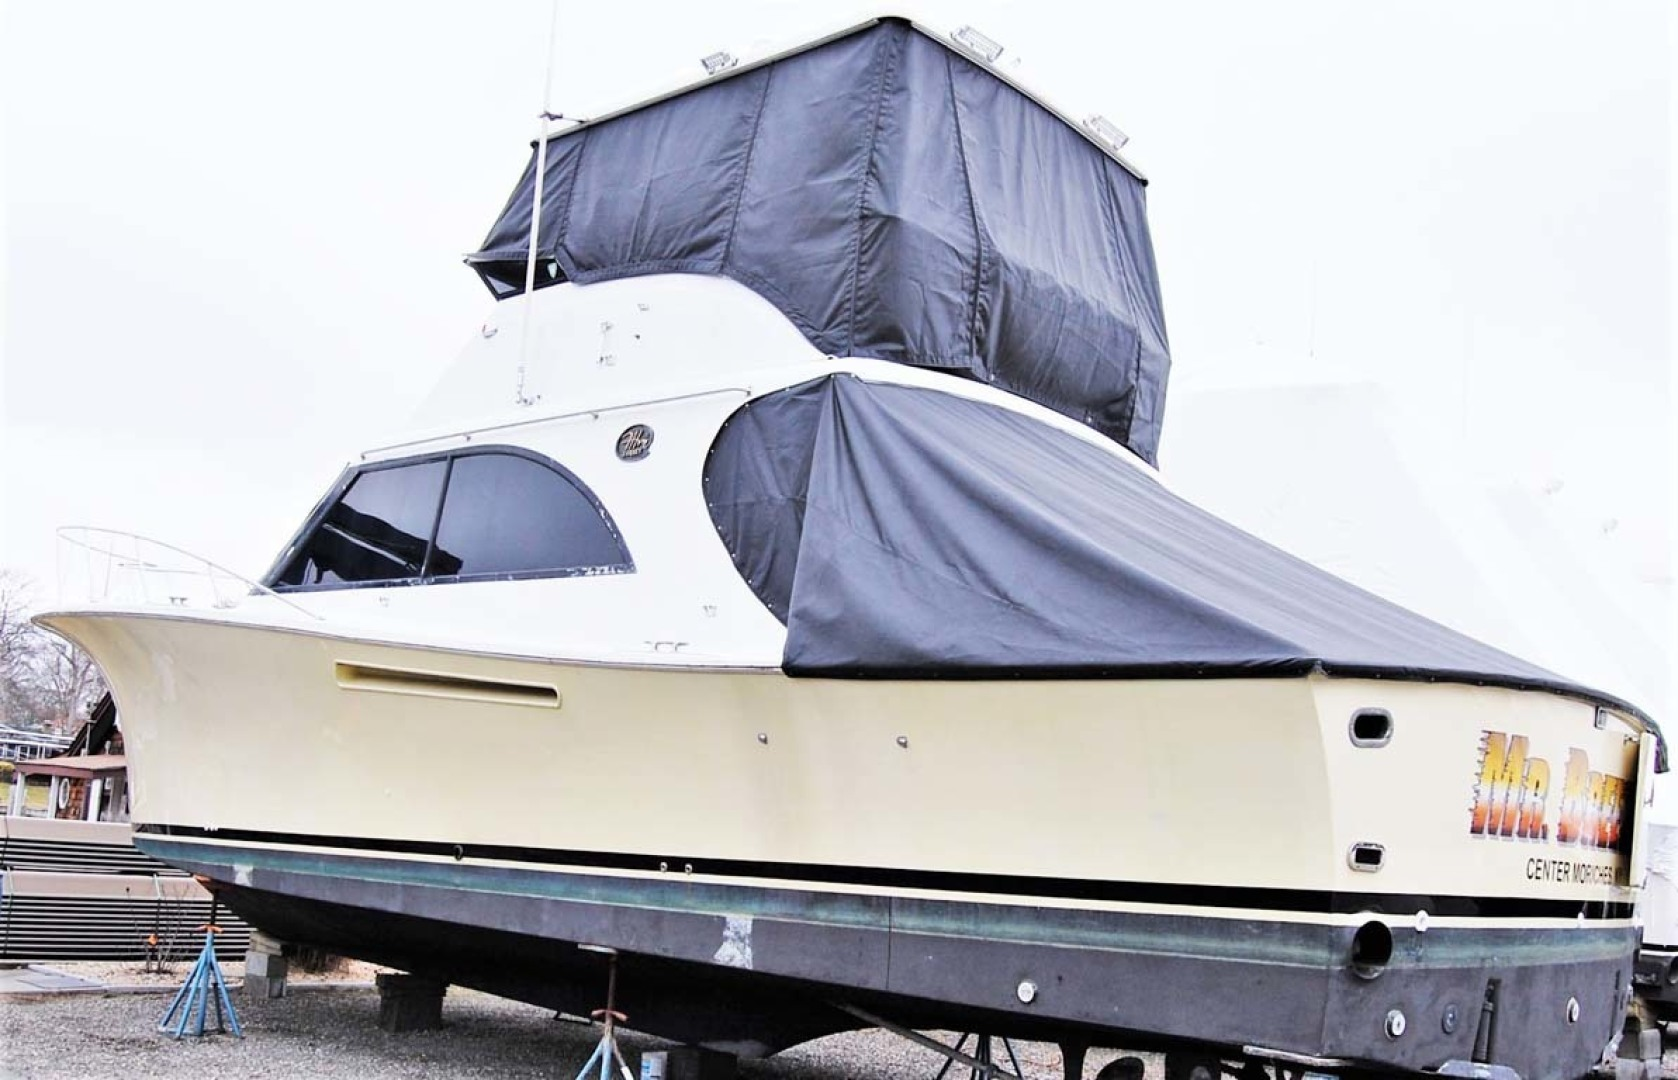 Jersey-42 Convertible Sportfisherman 1990-Mr. Breeze Center Moriches-New York-United States-42 Jersey Convertible  Covers-1346388 | Thumbnail